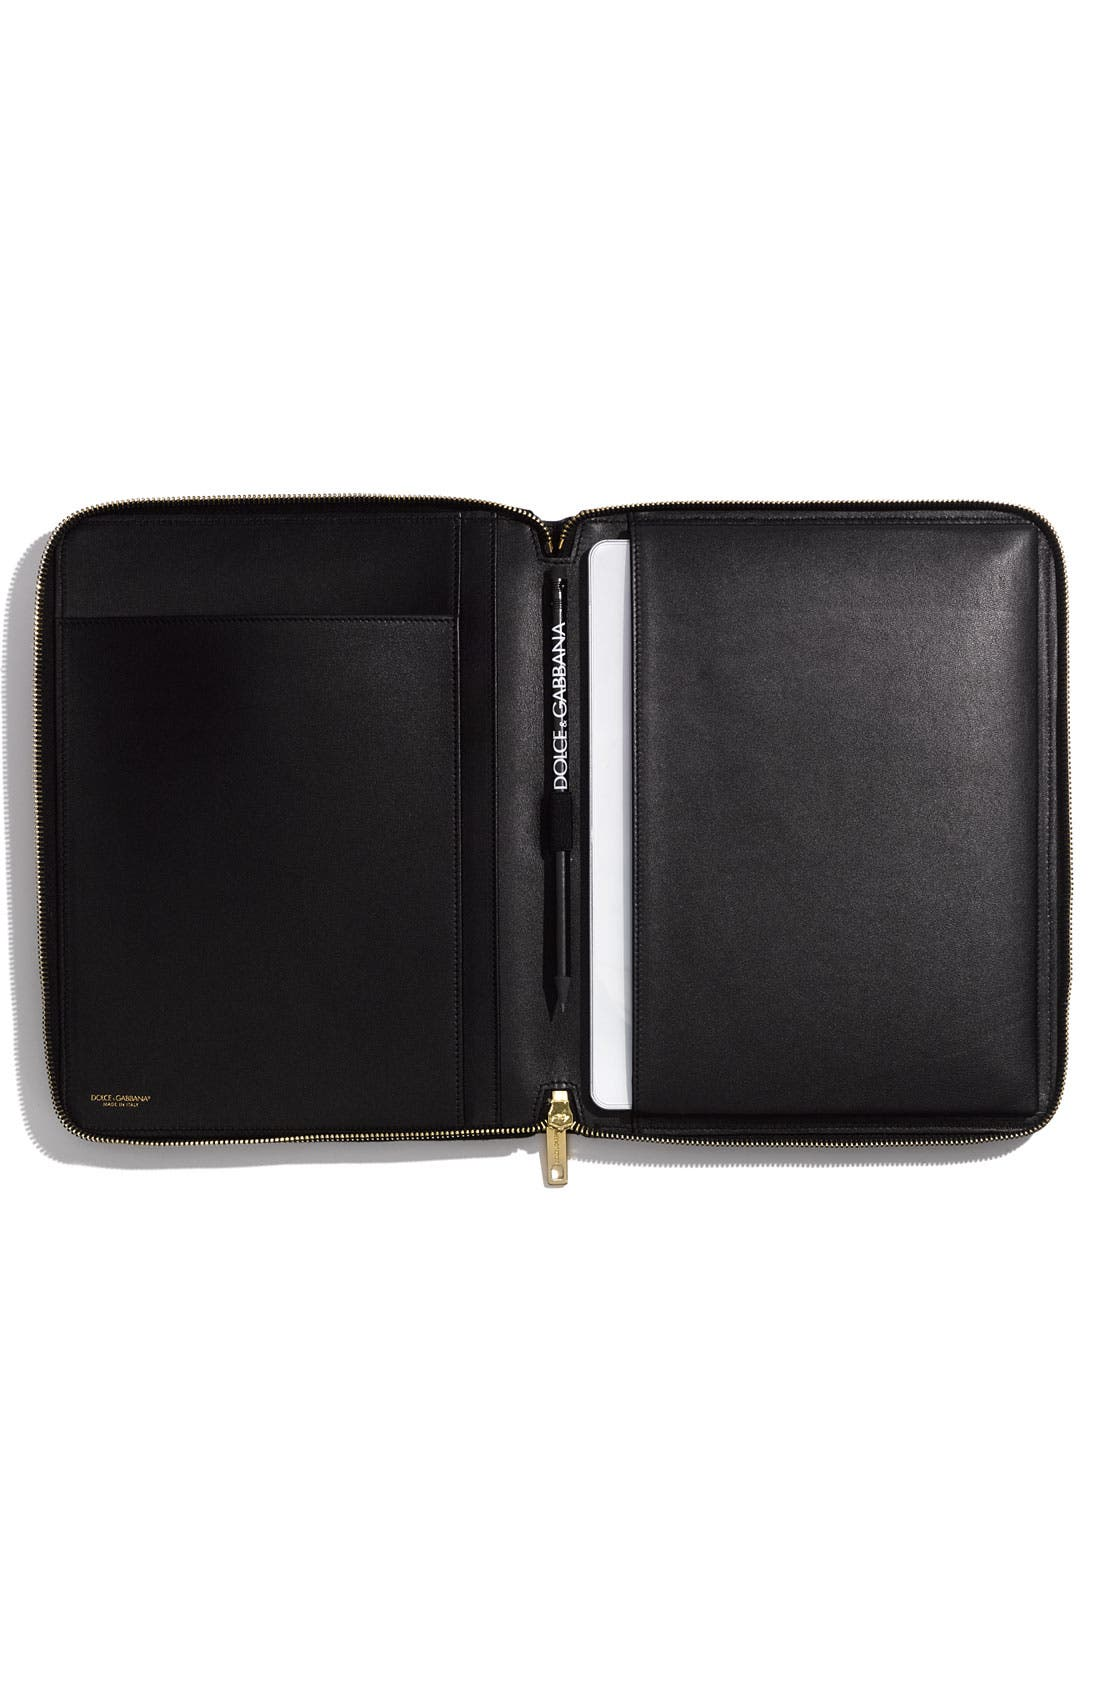 Alternate Image 3  - Dolce&Gabbana Zip Around iPad Case